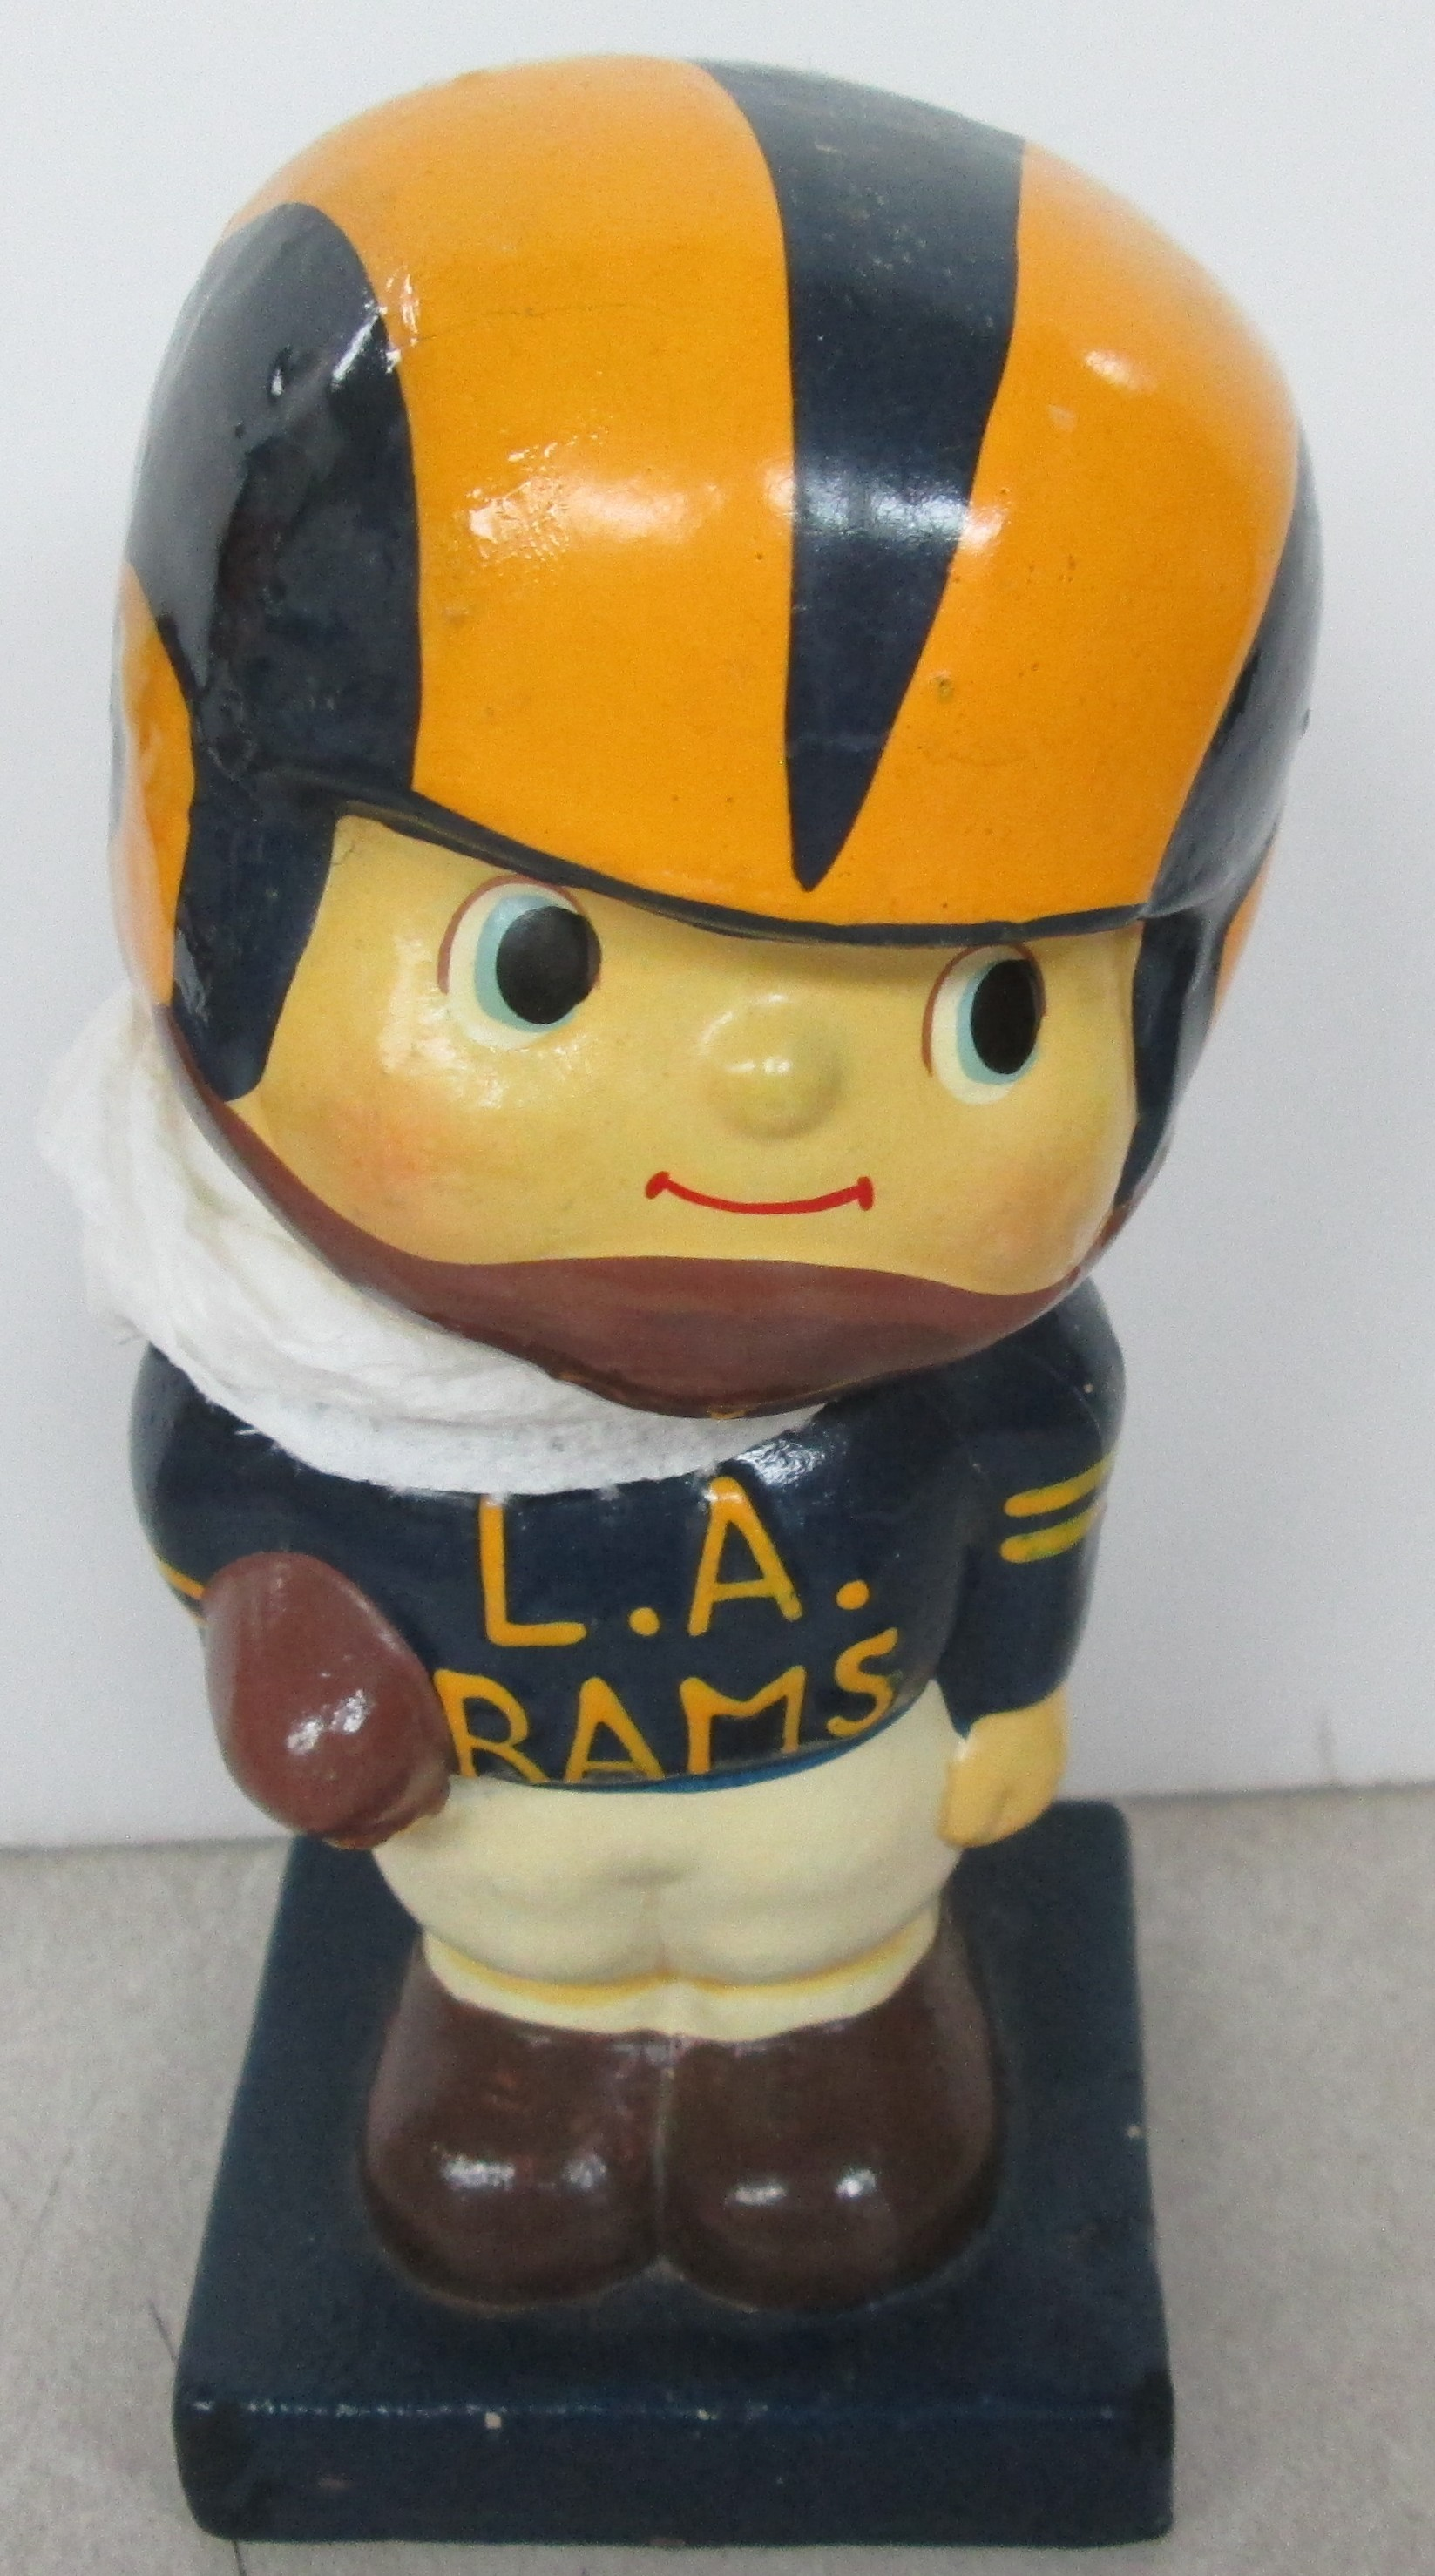 Los Angeles Rams (circa 1961-63)